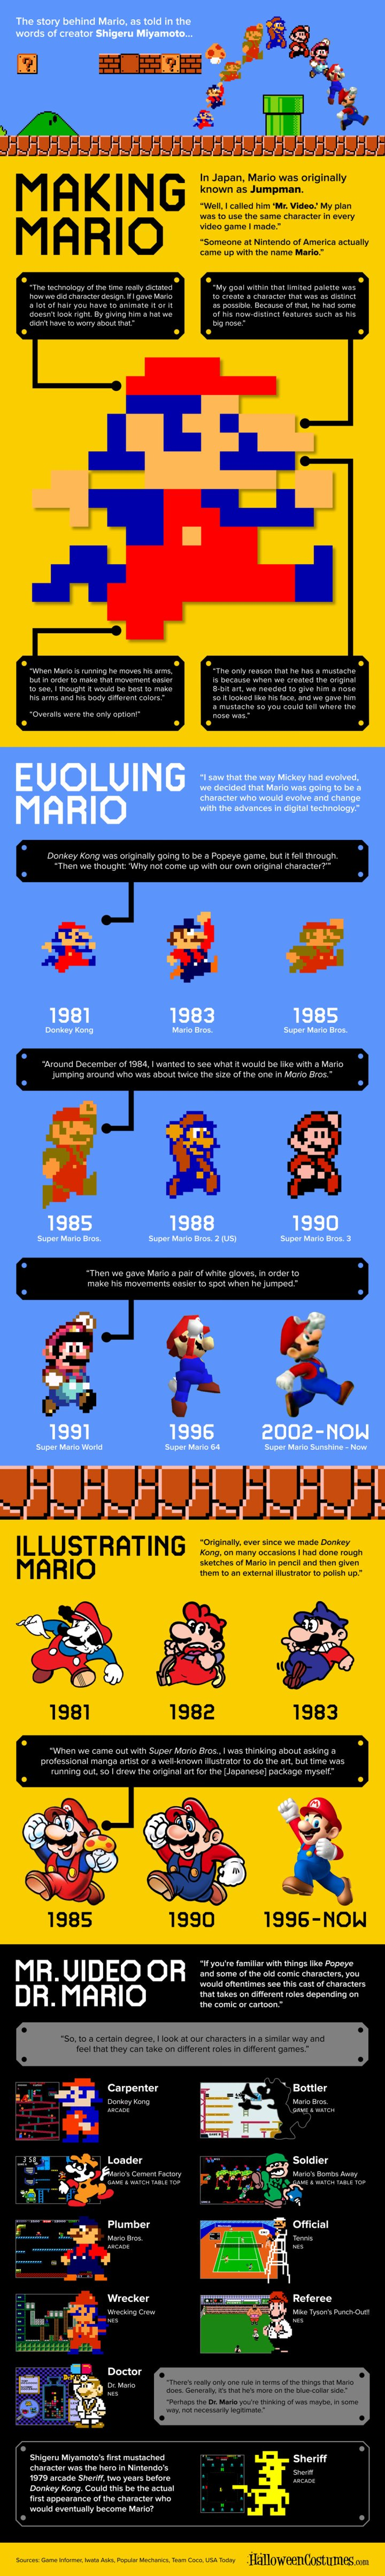 Making Mario Infographic